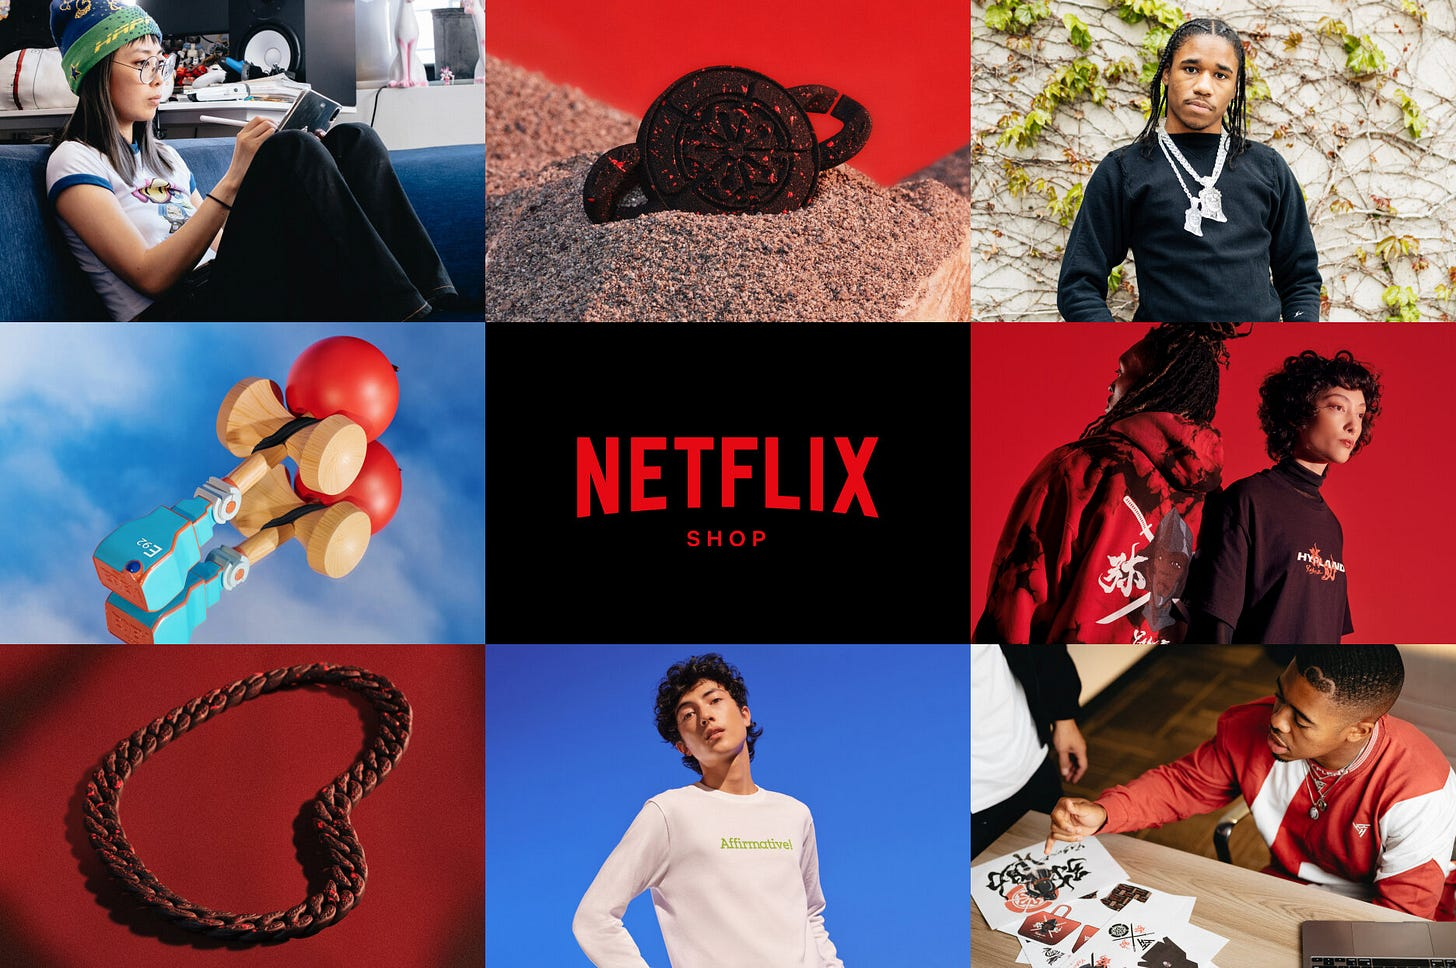 Netflix Online Shop to Sell Products Tied to Shows Like 'Lupin' - The New  York Times